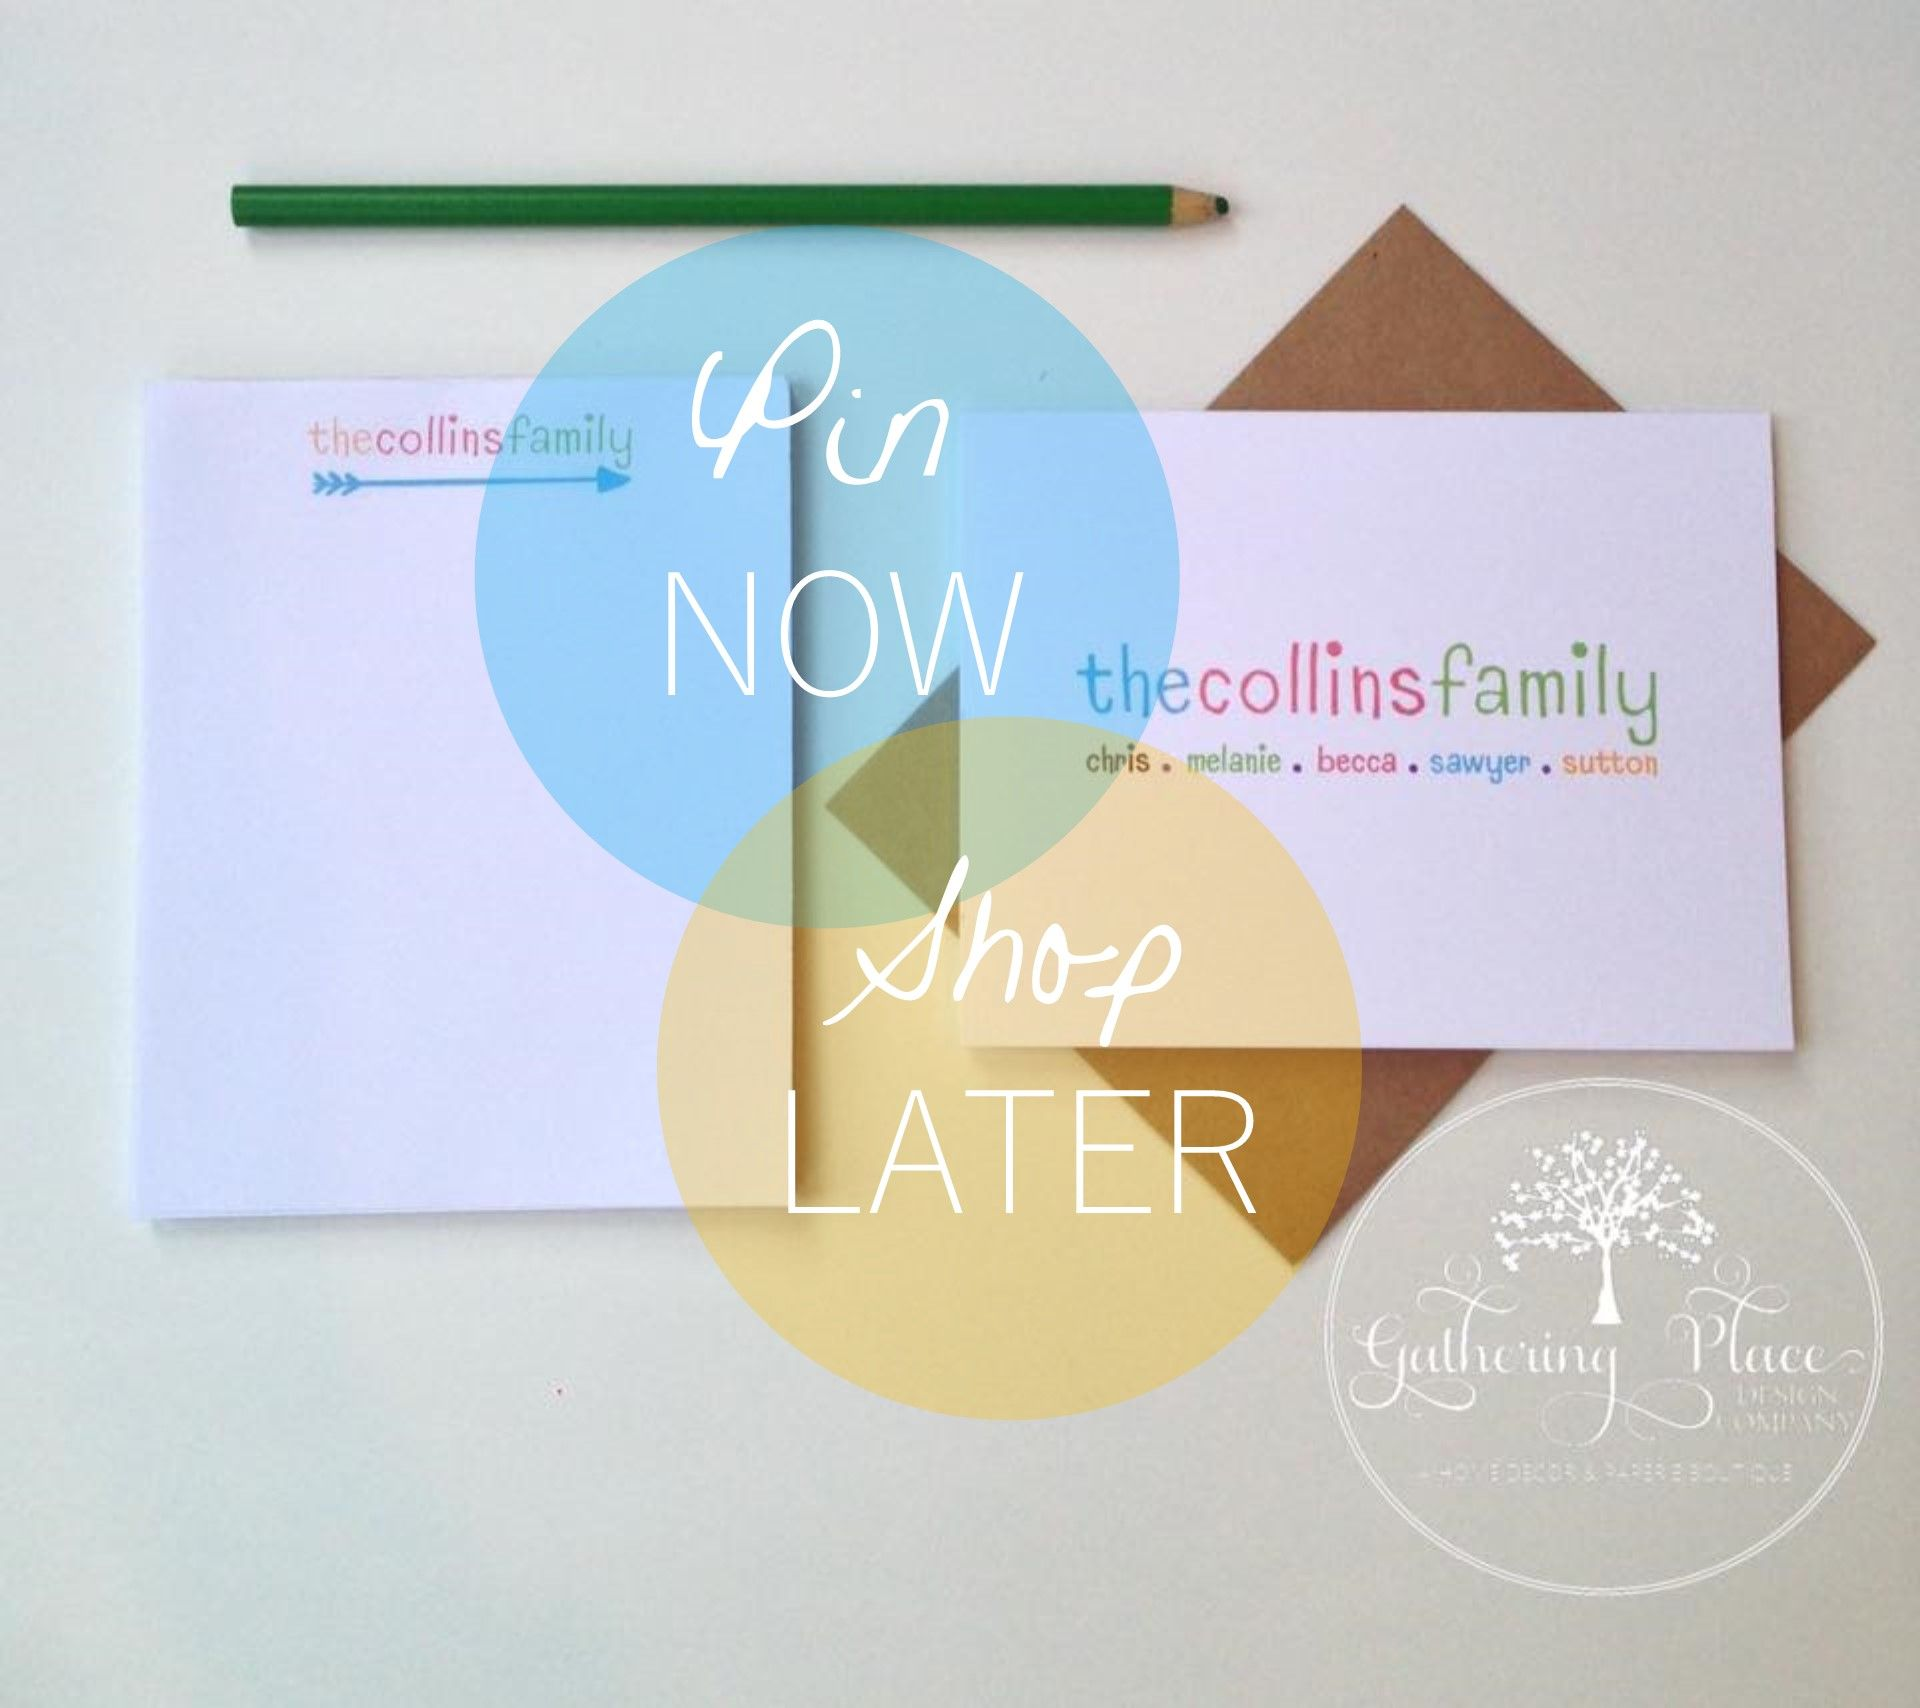 Personalized Stationery Gift Set from the Happy Life Collection by The Gathering Place Design Company.  Perfect gift for Teachers, Wedding, New Baby, New Home, Retirement, Birthday.  Shop more designs at etsy.com/shop/thegatheringplaceco   https://www.etsy.com/your/shops/thegatheringplaceco/tools/listings/266273325